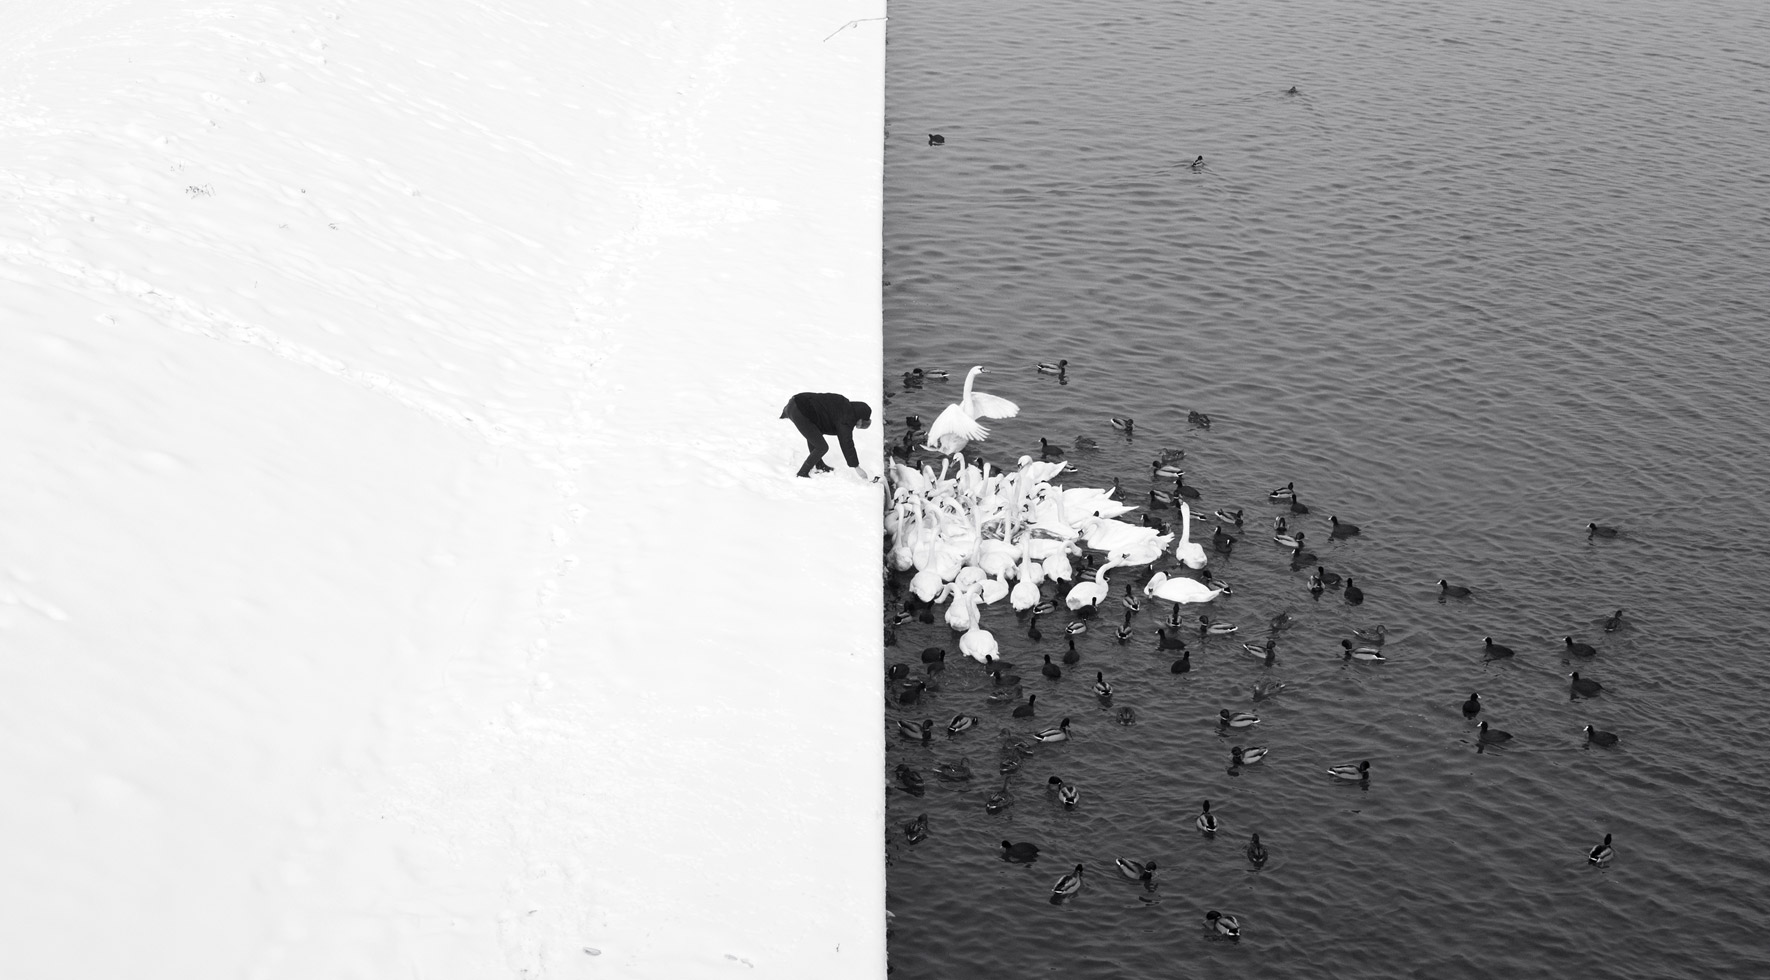 A Man Feeding Swans in the Snow, Marcin Ryczek (Poland)  1st place winner in the Landscape/Seascape/Nature category